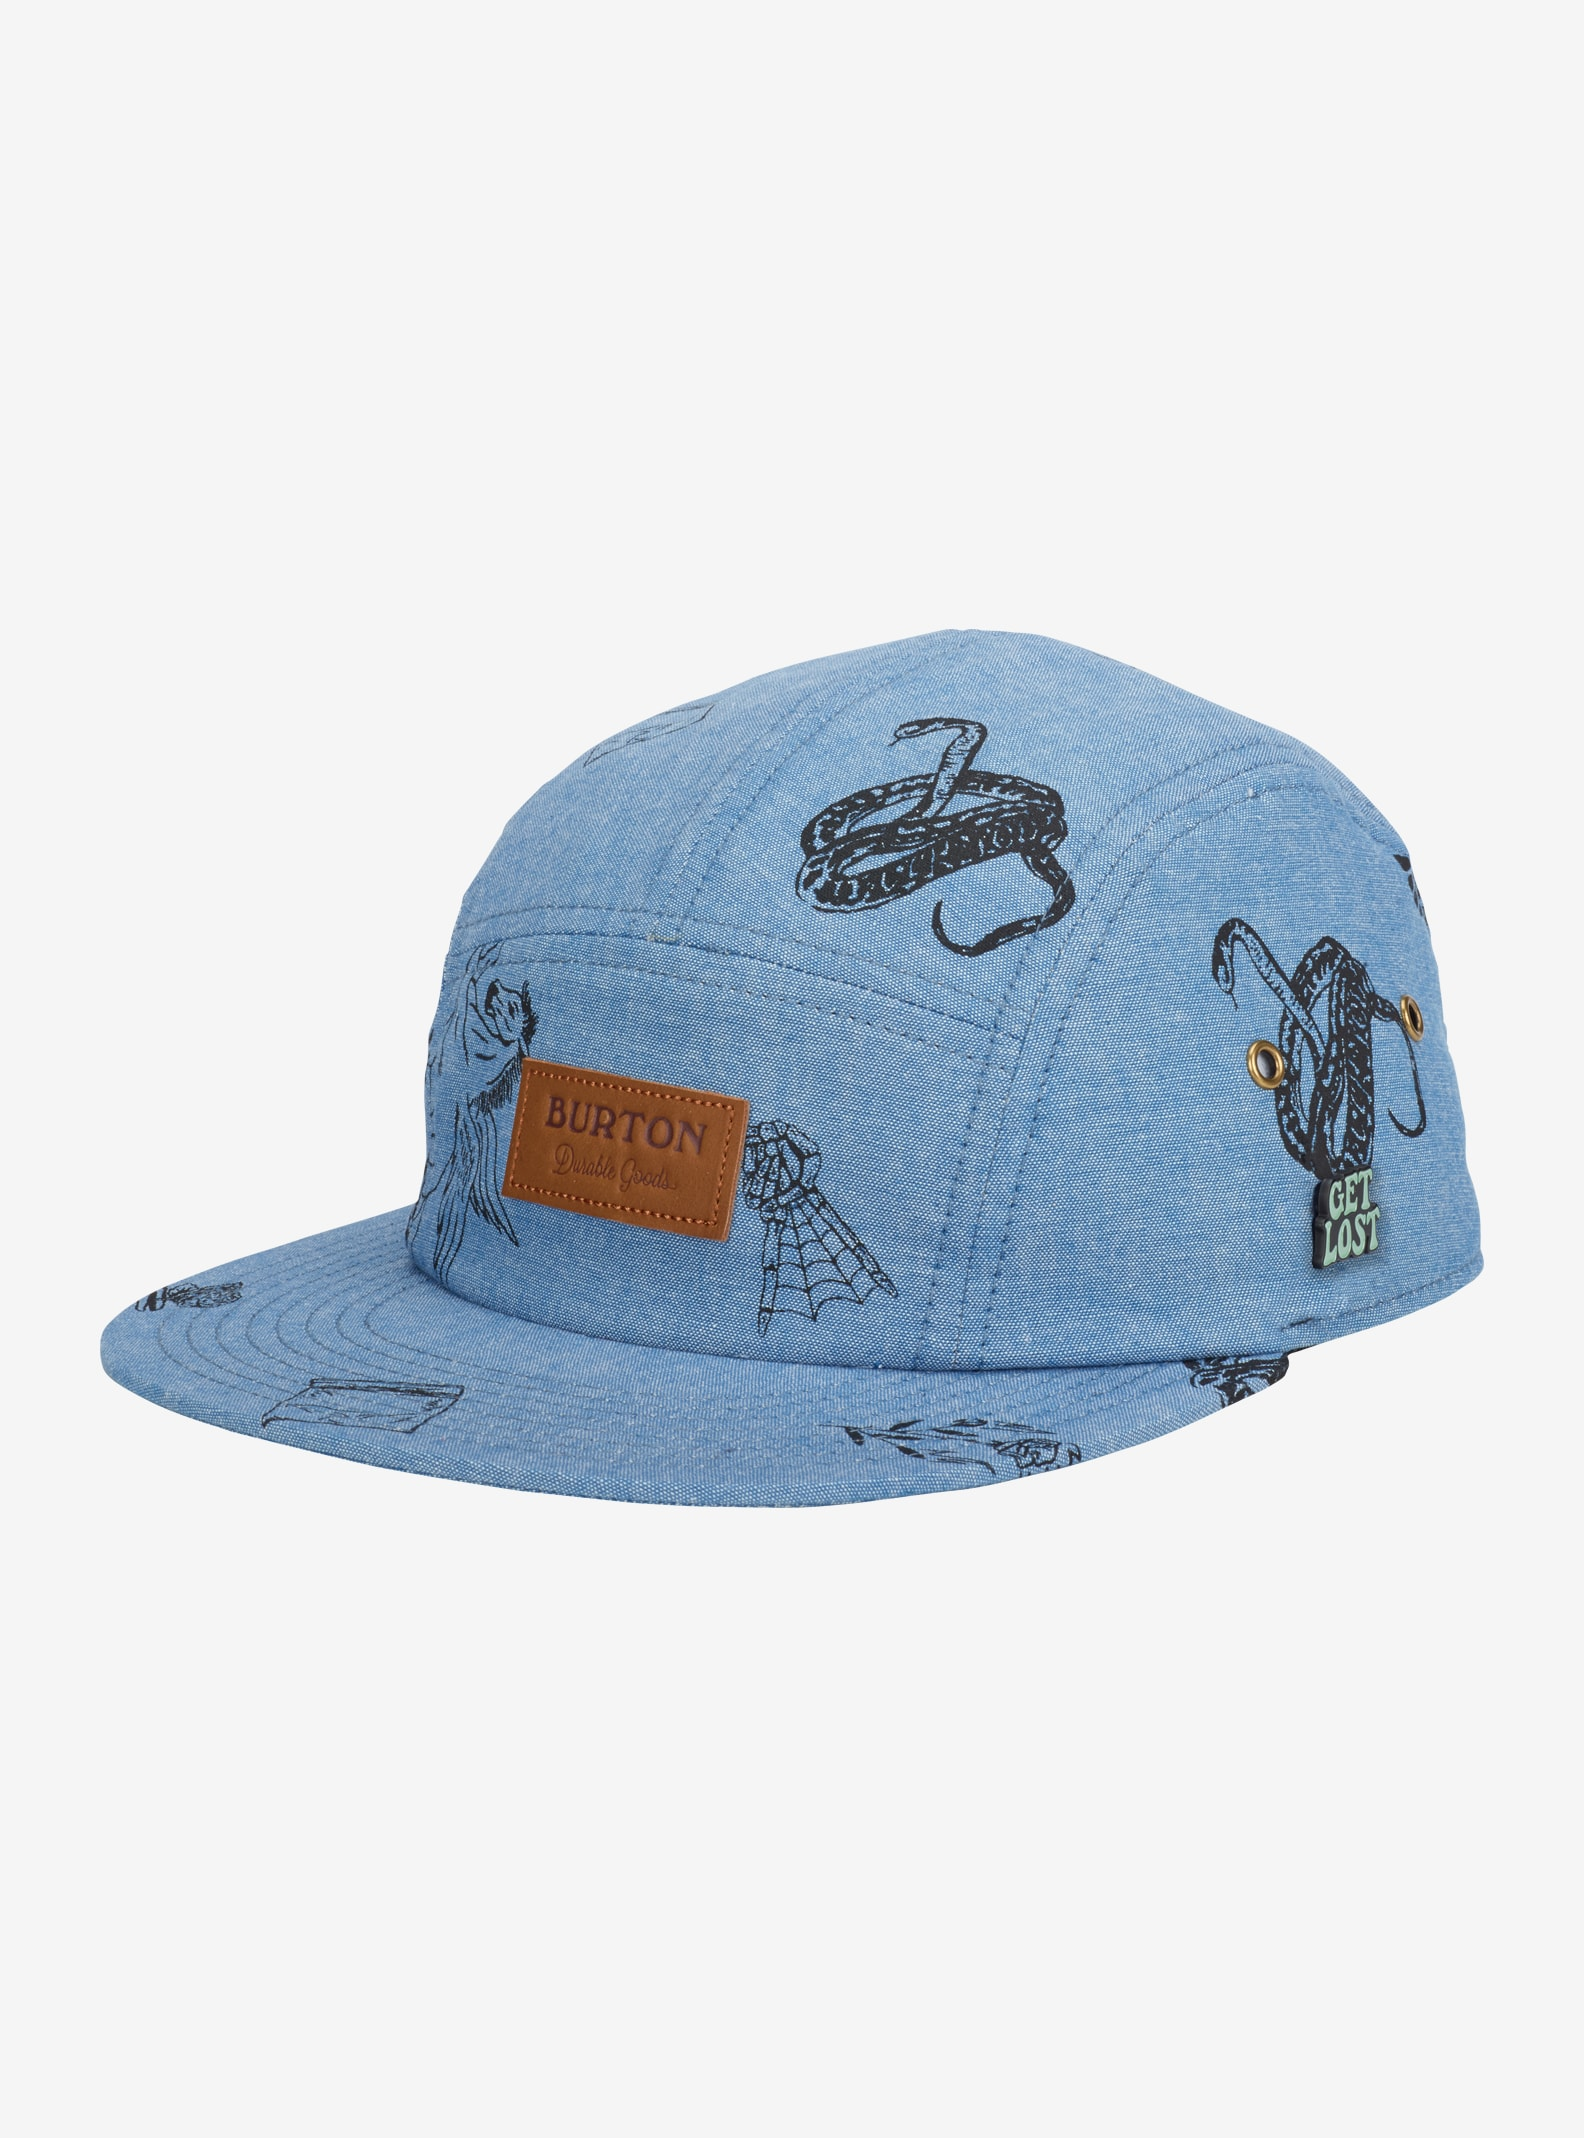 Burton Strange Daze Cap angezeigt in Chambray Freetime